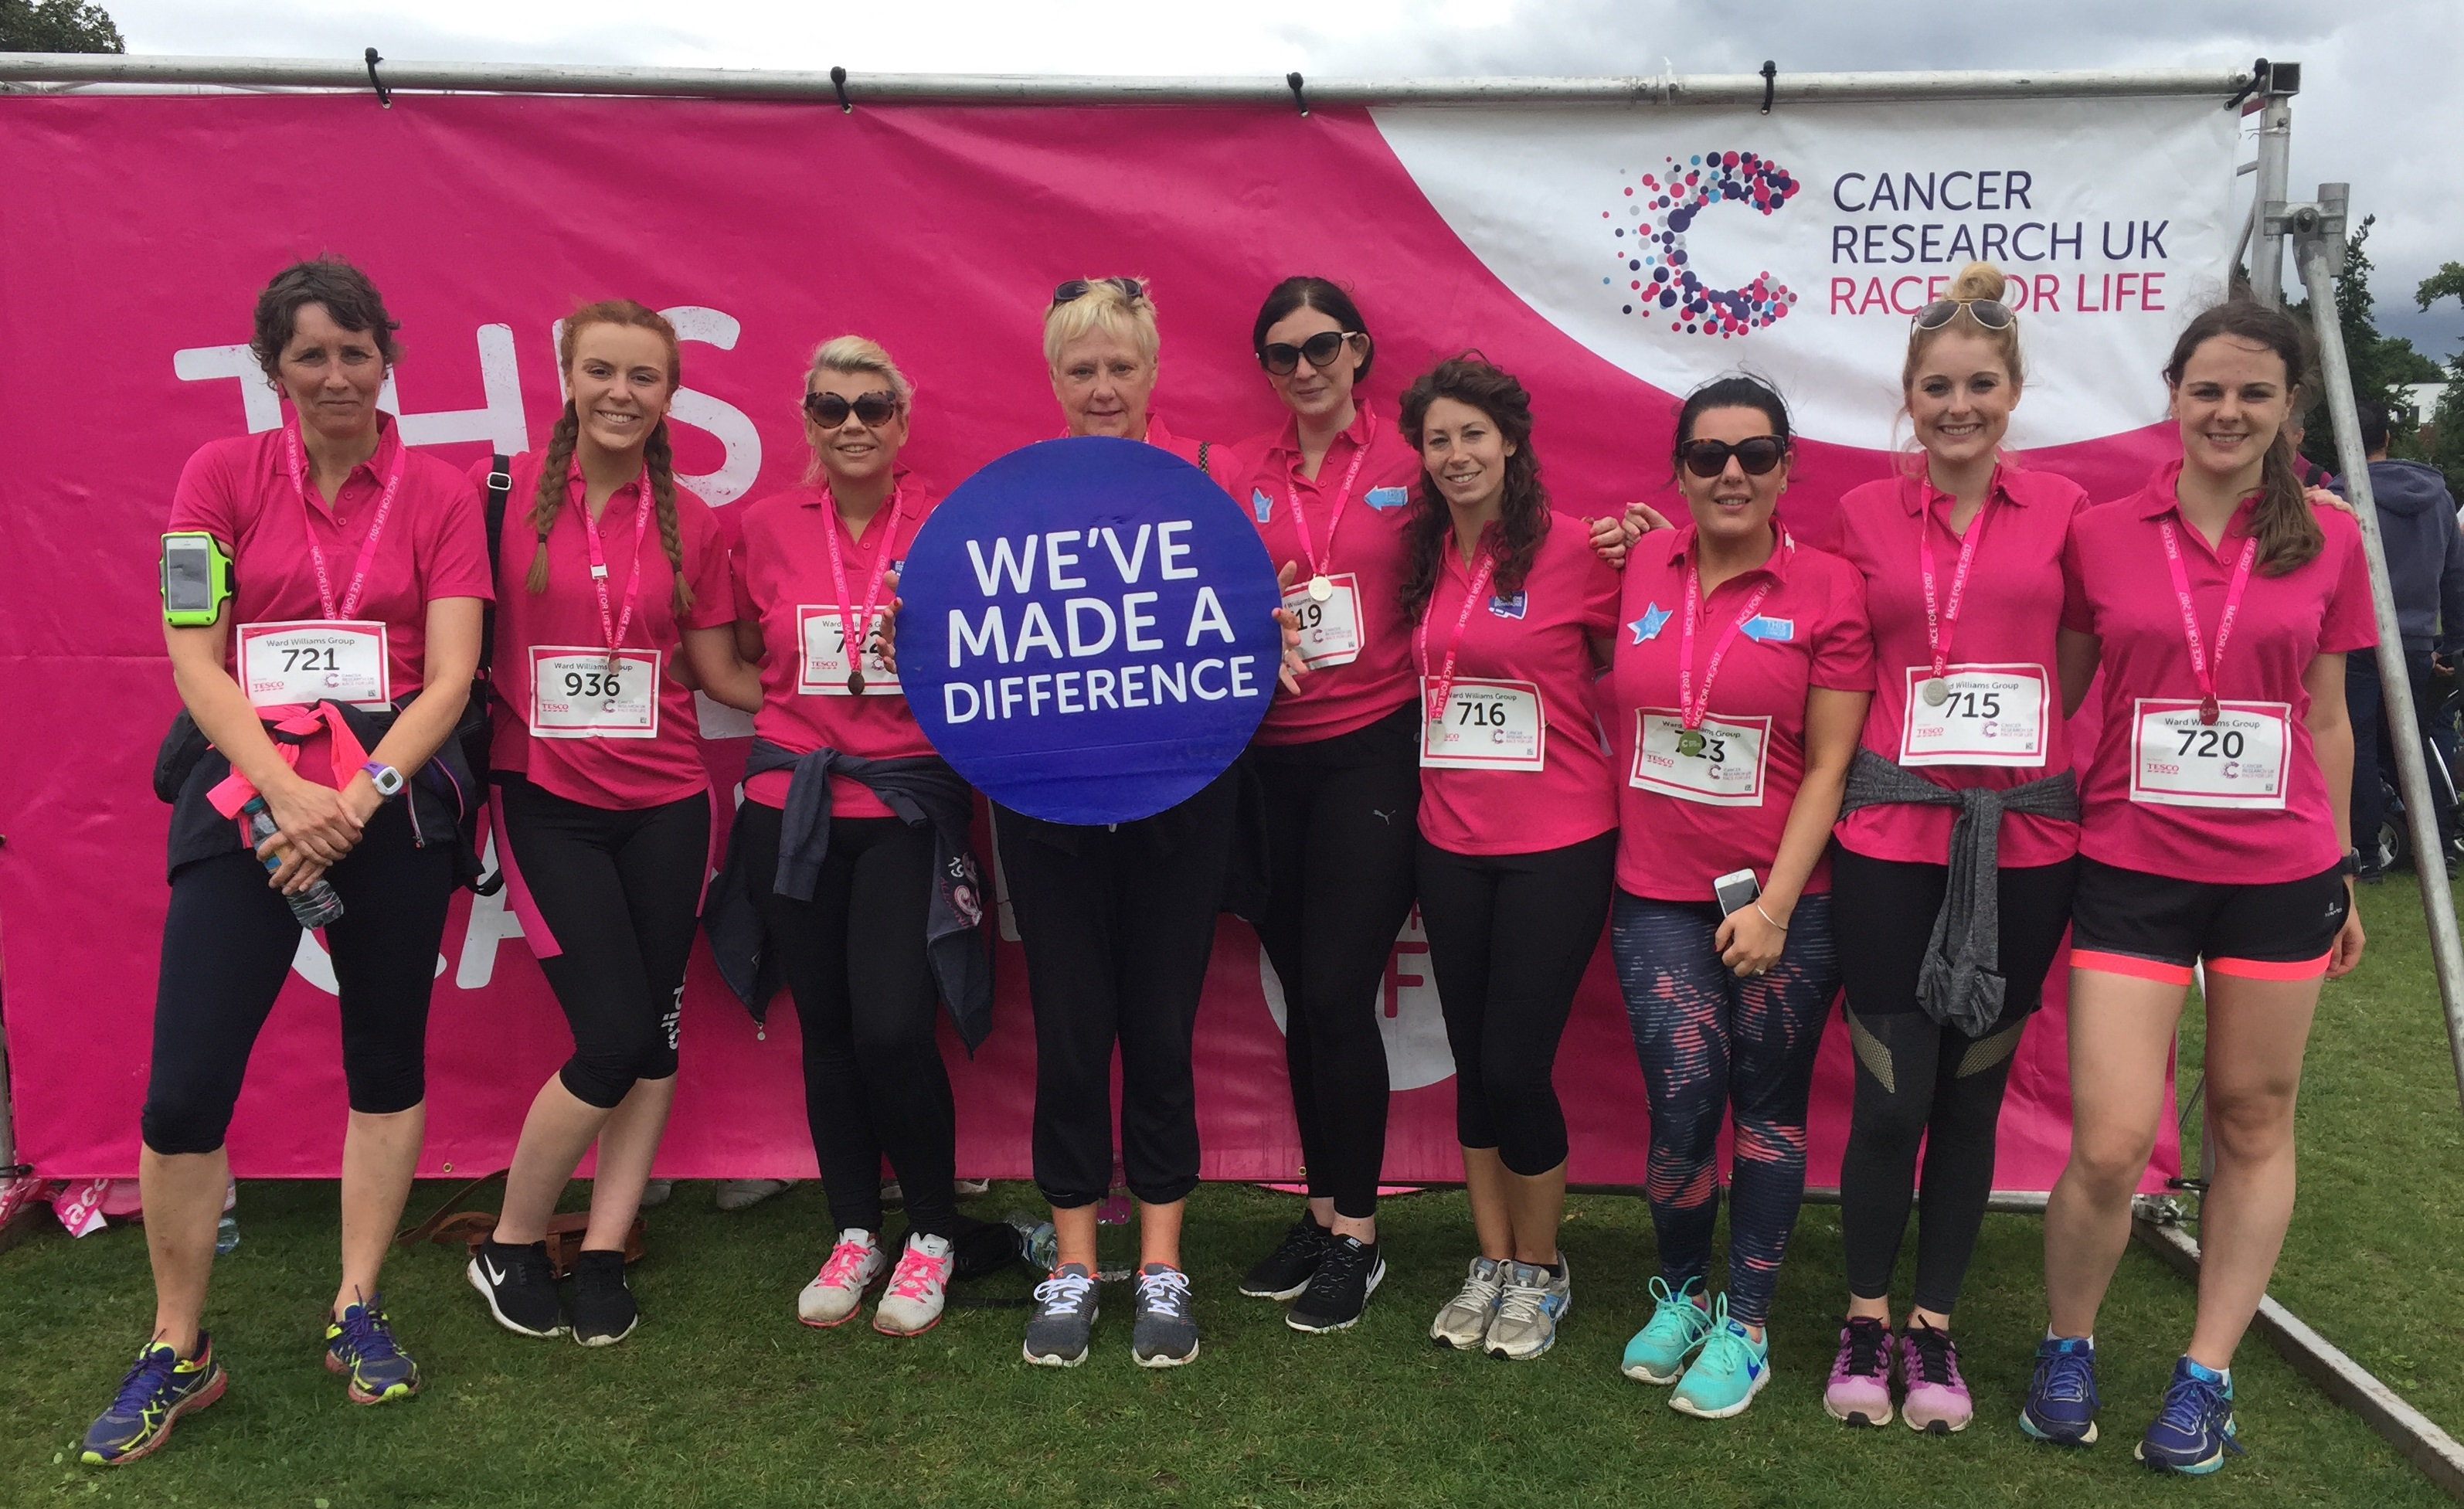 The ladies of Ward Williams HR Advisors in Race for life